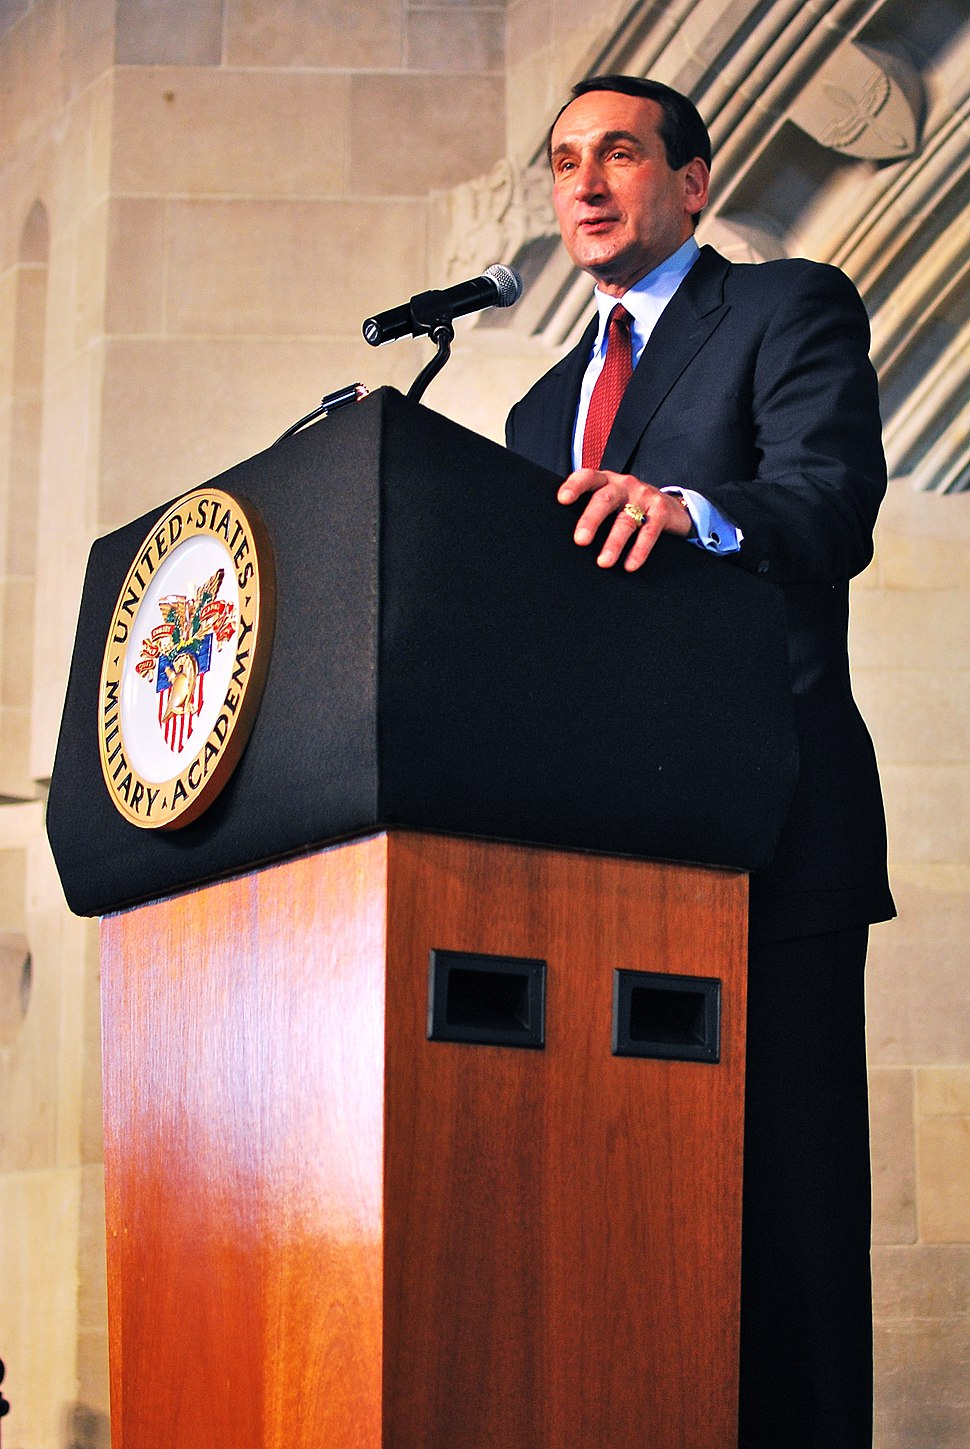 Coach K speaking at West Point, 27 Apr 2010